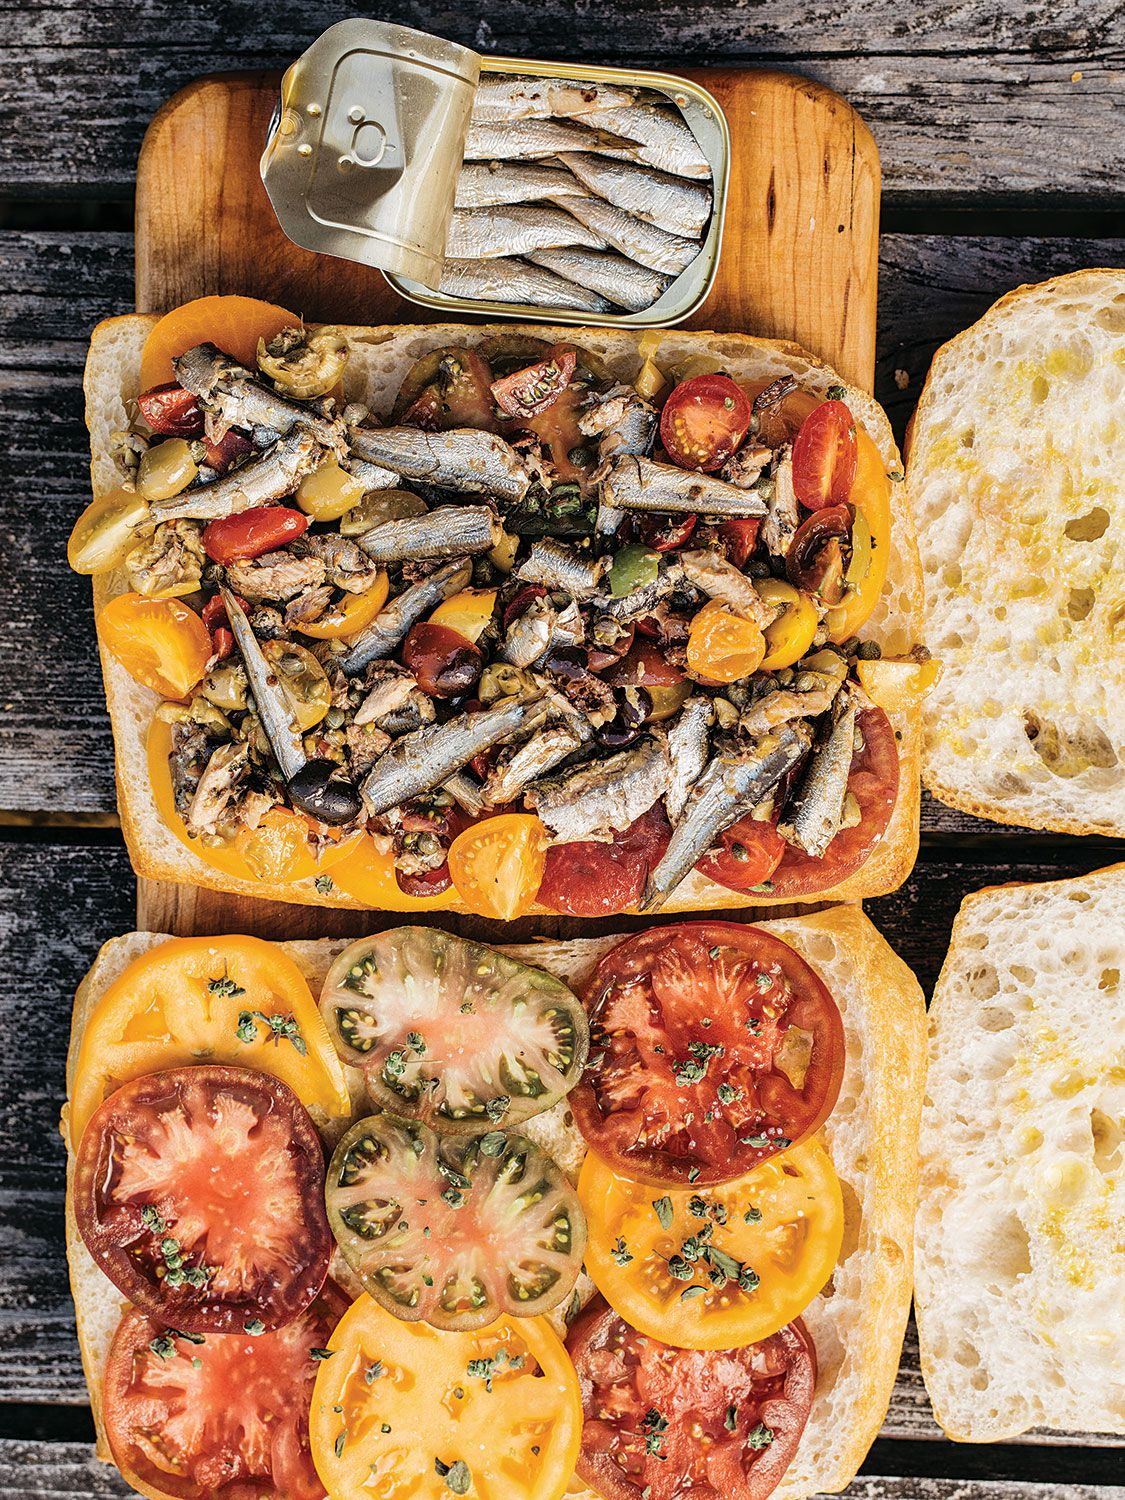 "Cherry tomatoes are tossed with canned sardines here, along with fresh oregano, olives, capers, and a red wine vinaigrette. The whole thing is layered with thin slices of heirloom tomato between slabs of focaccia. Get the recipe for <a href=""https://www.saveur.com/canned-sardine-tomato-and-caper-sandwiches-recipe/"">Canned Sardine, Tomato, and Caper Sandwiches</a>"